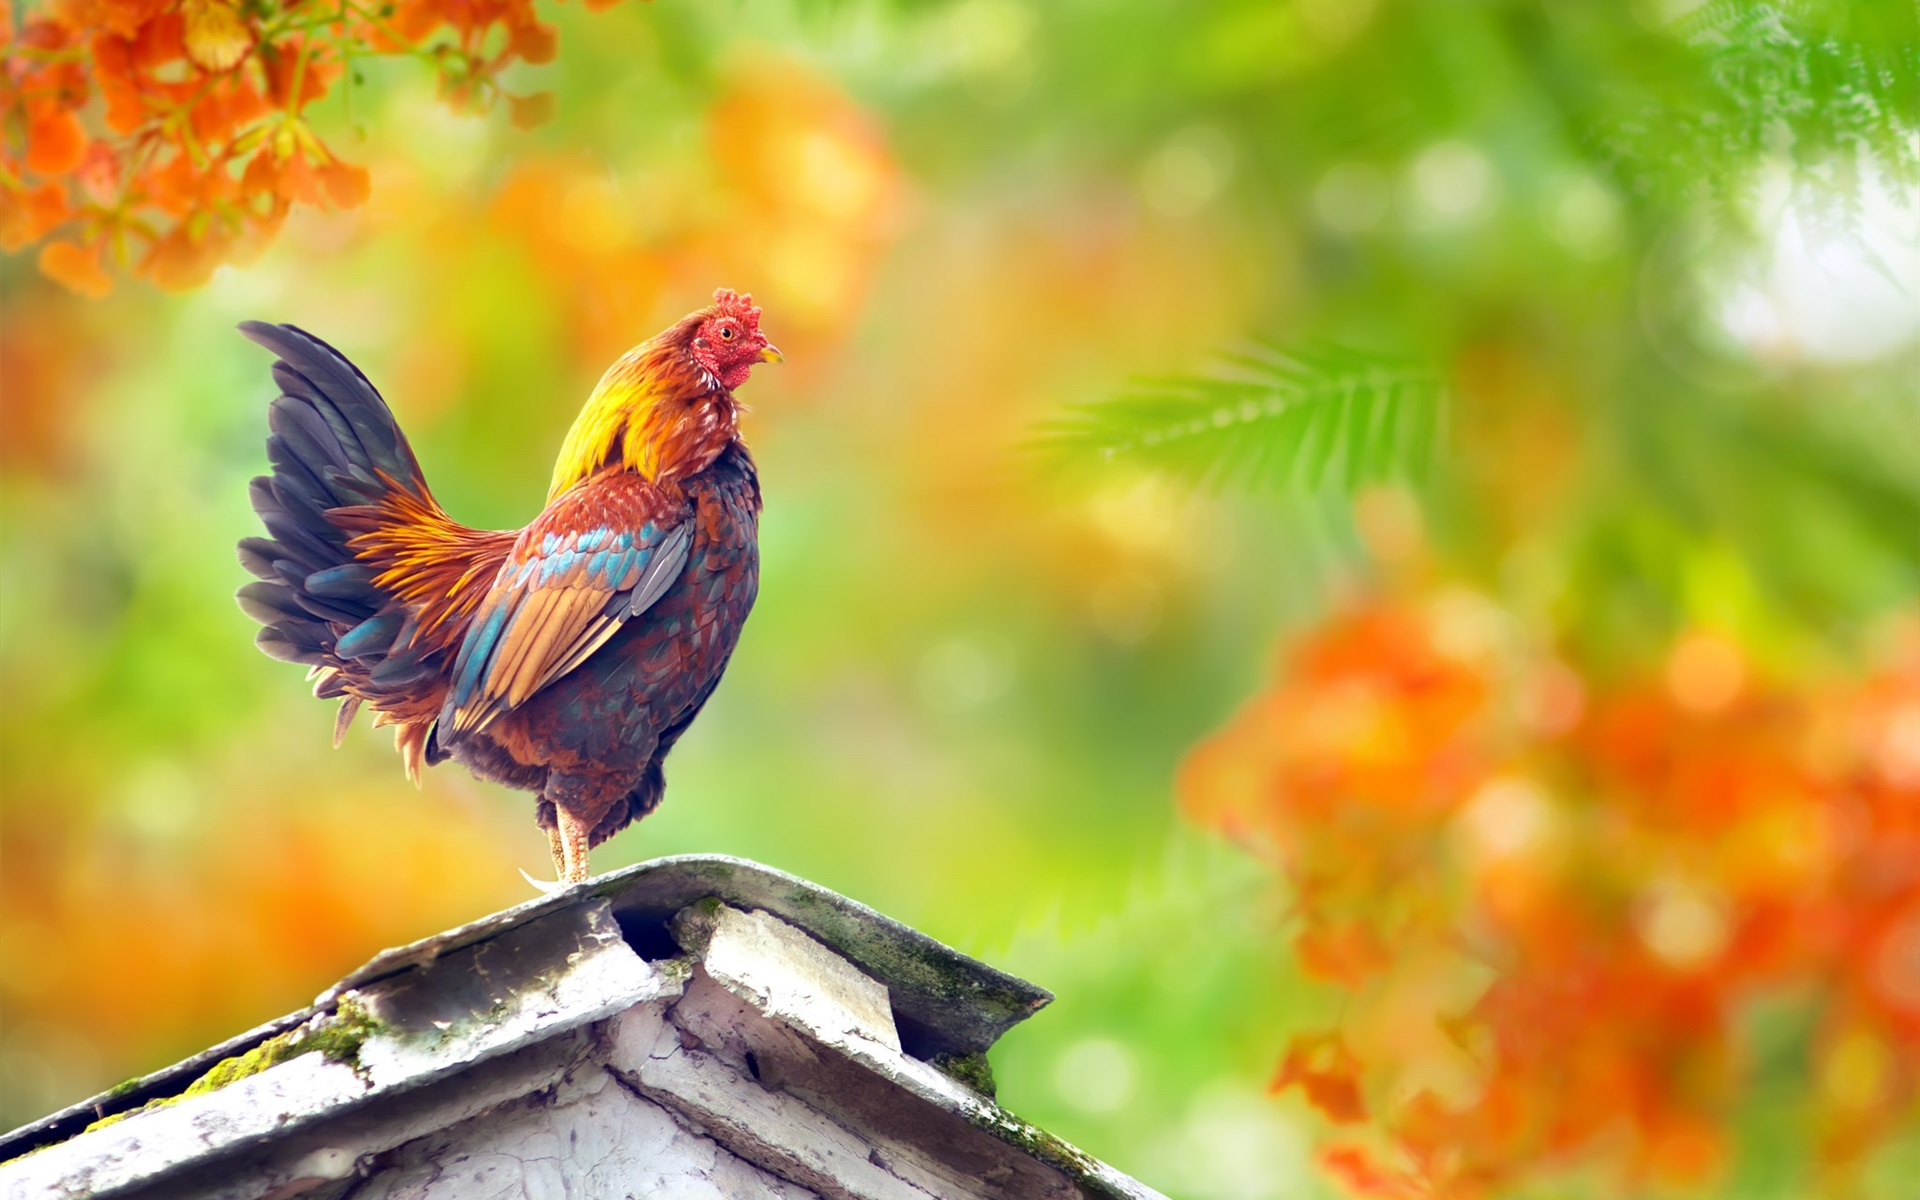 Wallpaper cock standing on roof 1920x1200 hd picture image - Dick wallpaper ...